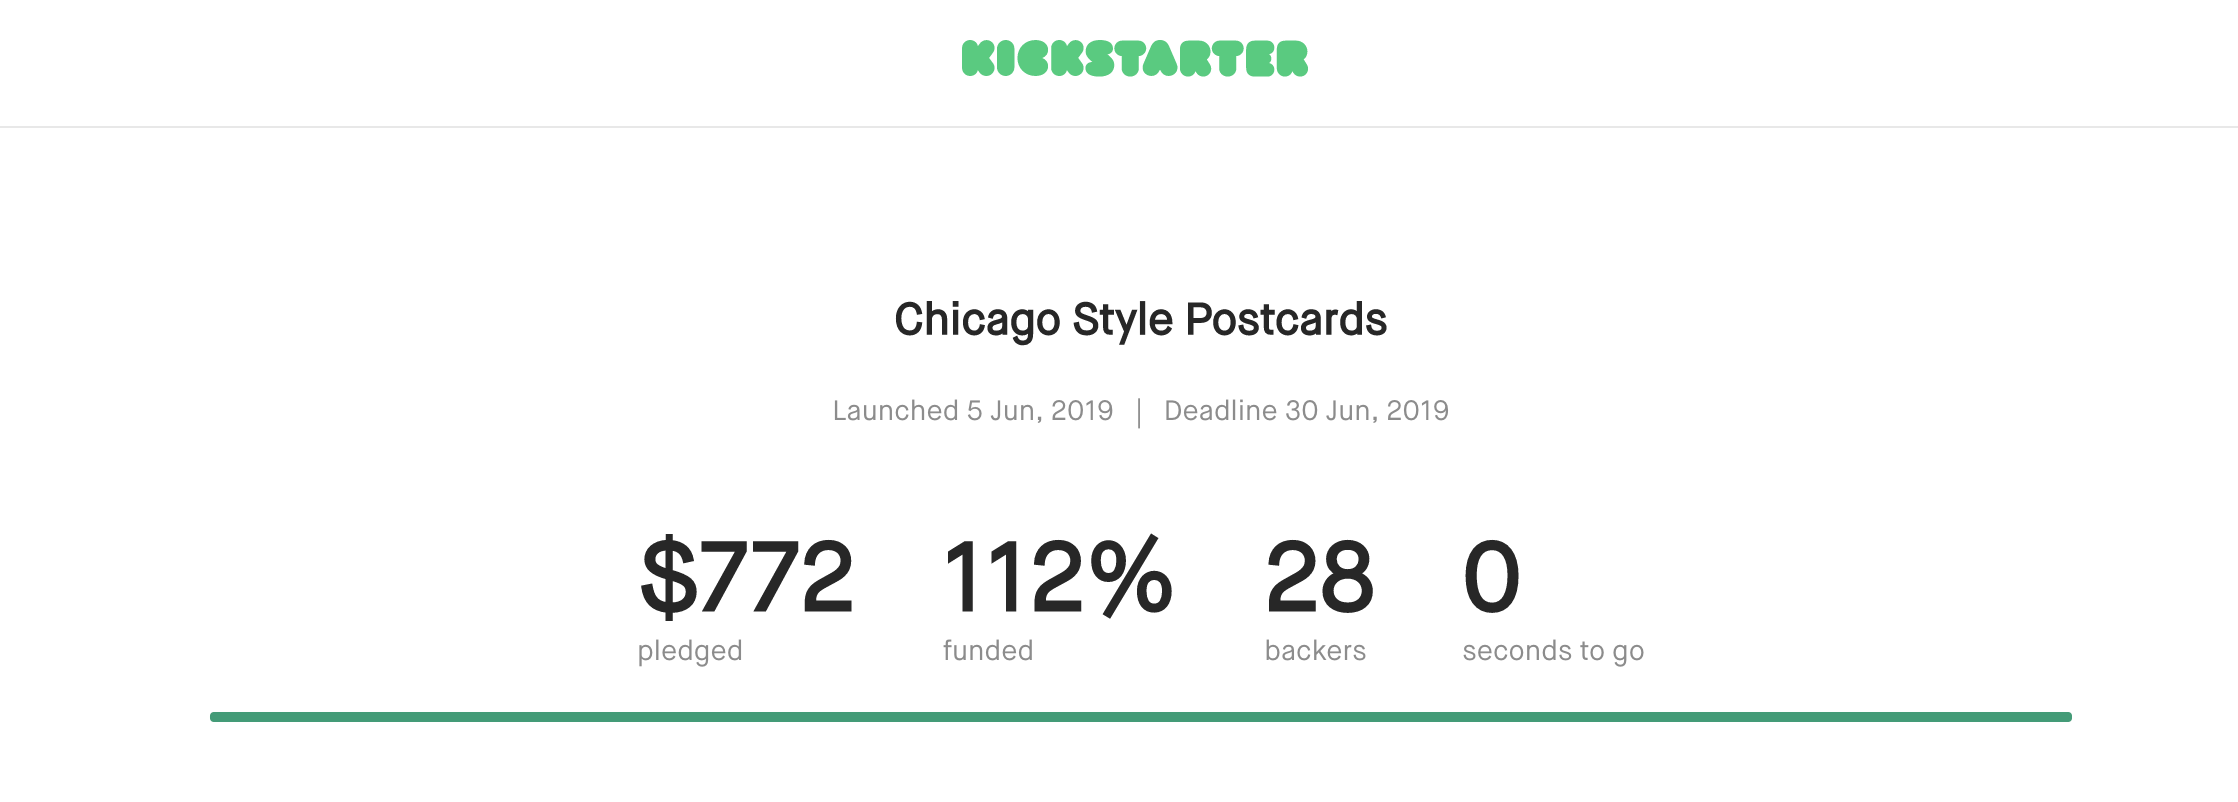 Kickstarter Results - Chicago Style Postcards Project